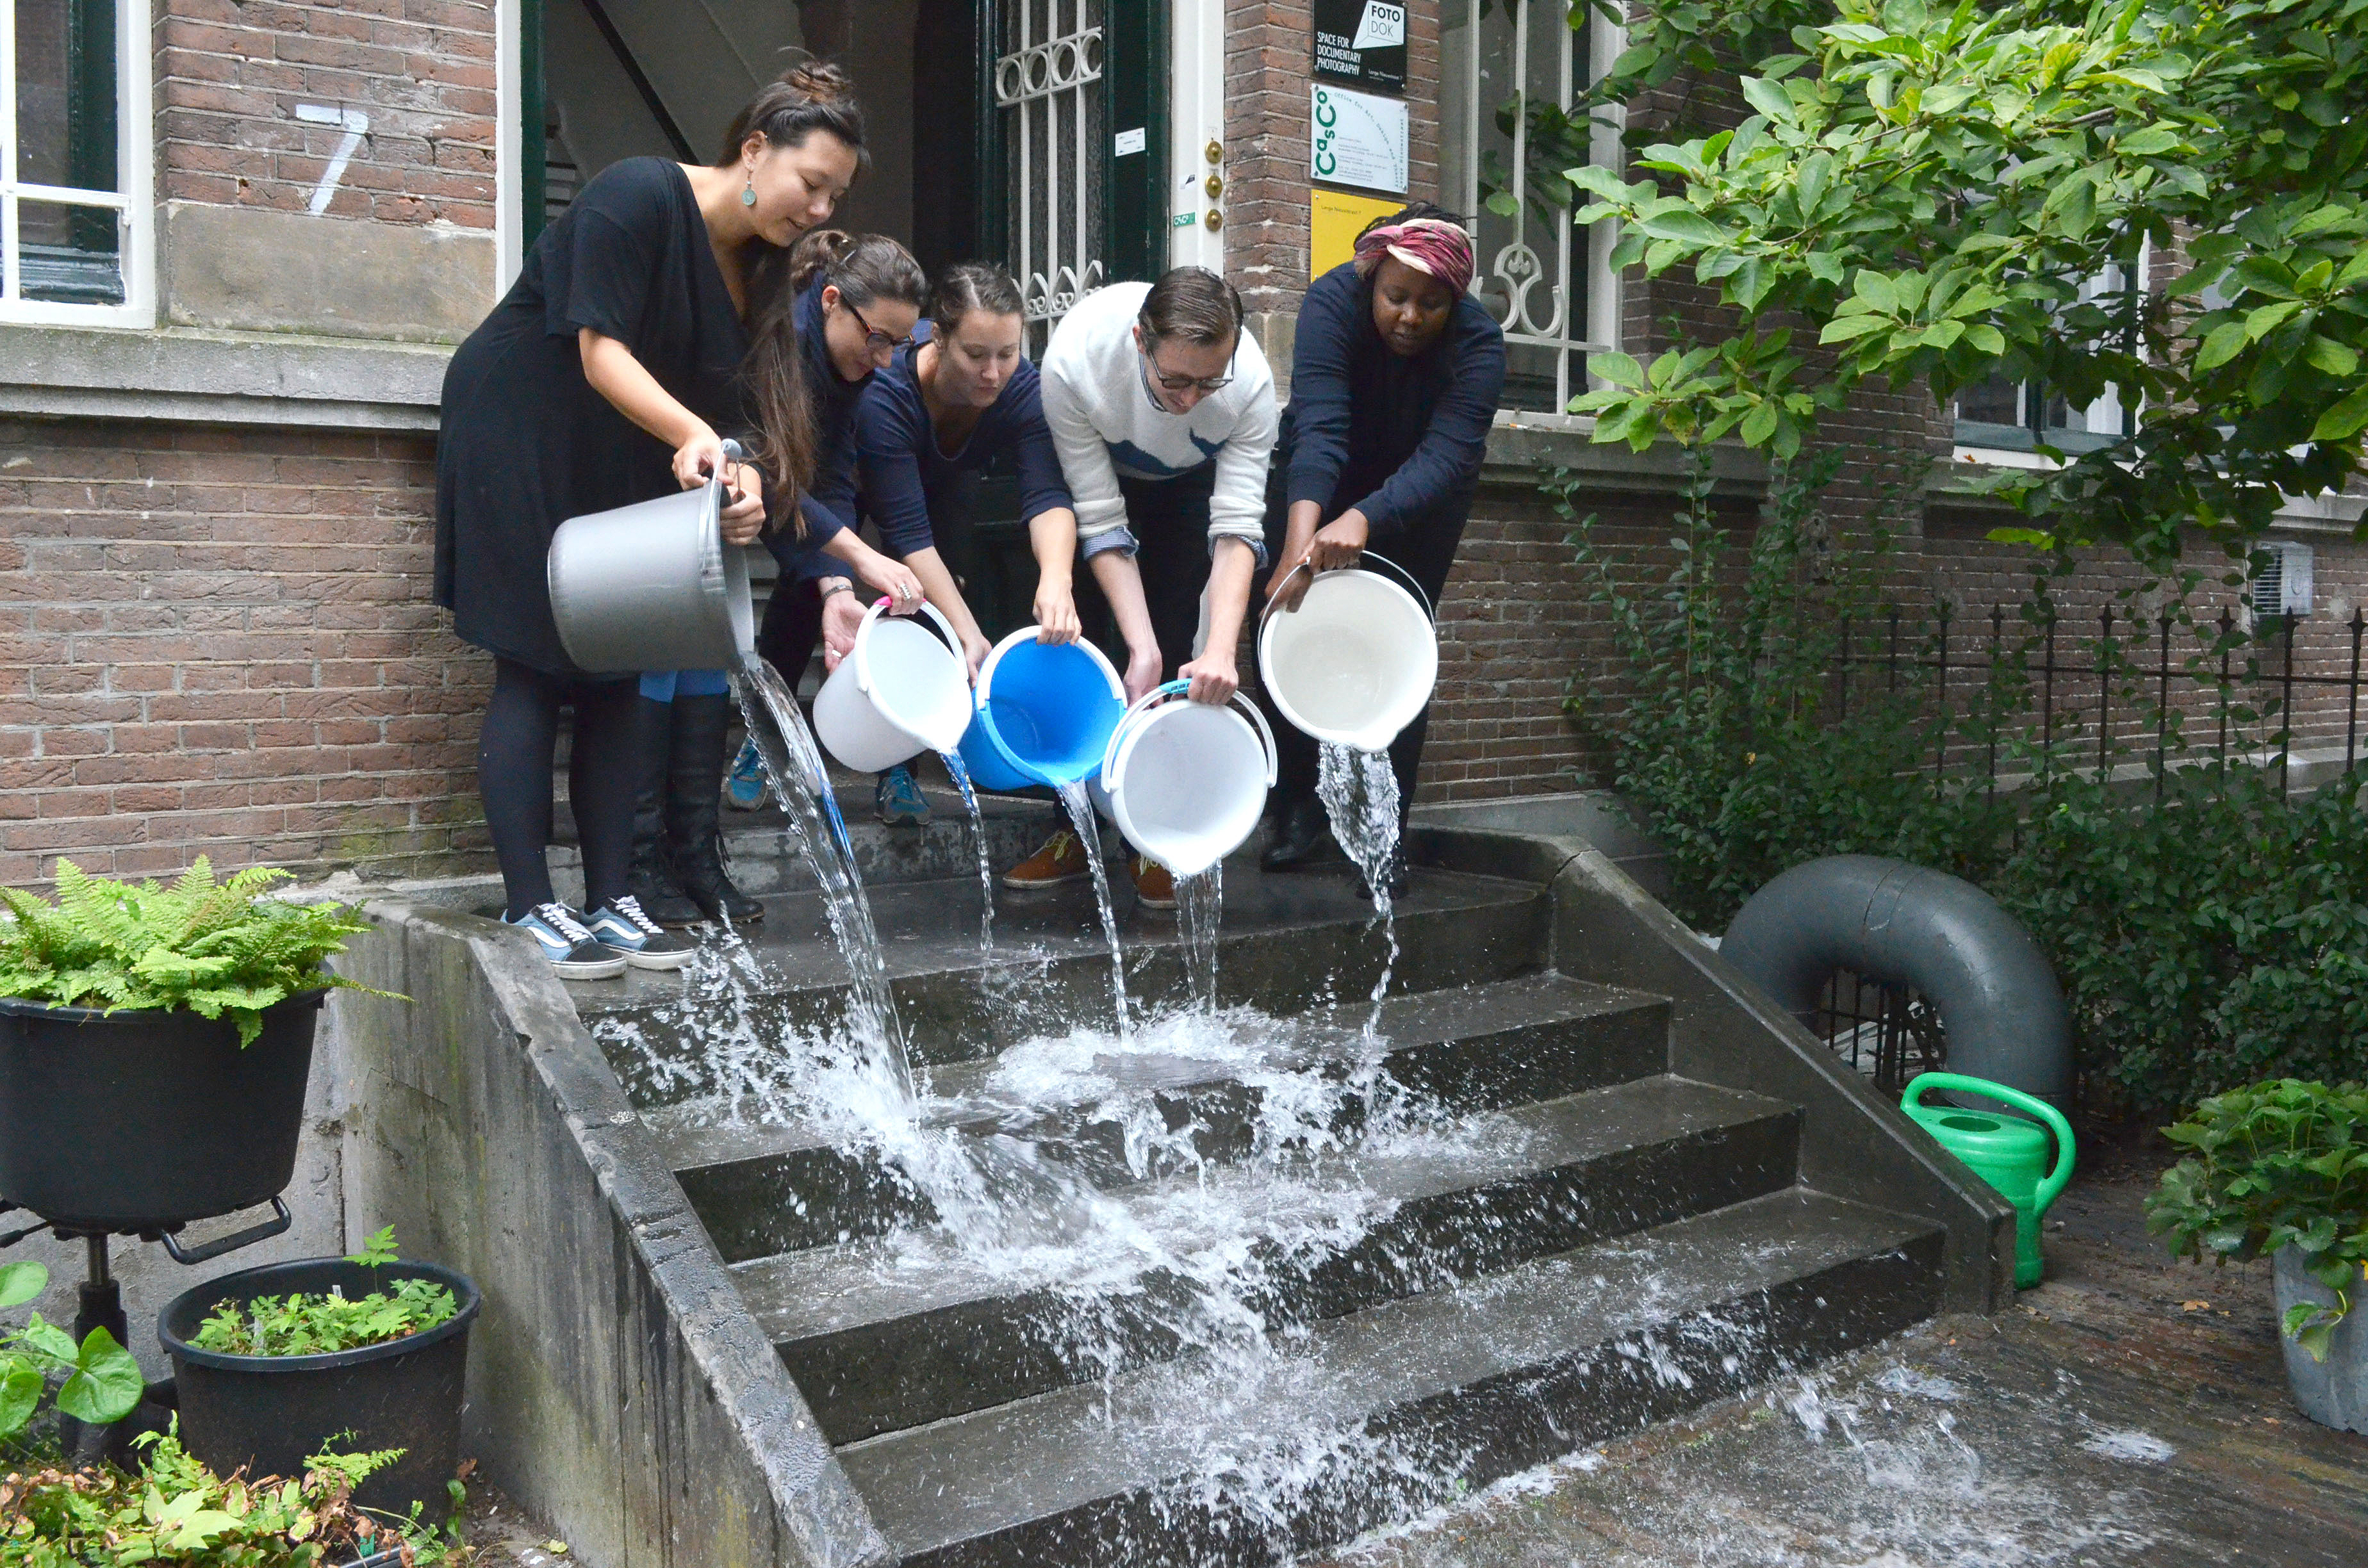 Annette Krauss & the Casco Team, Unlearning exercise #3: collective cleaning, as part of Site for Unlearning (Art Organisation), 2014, at Casco, Utrecht.